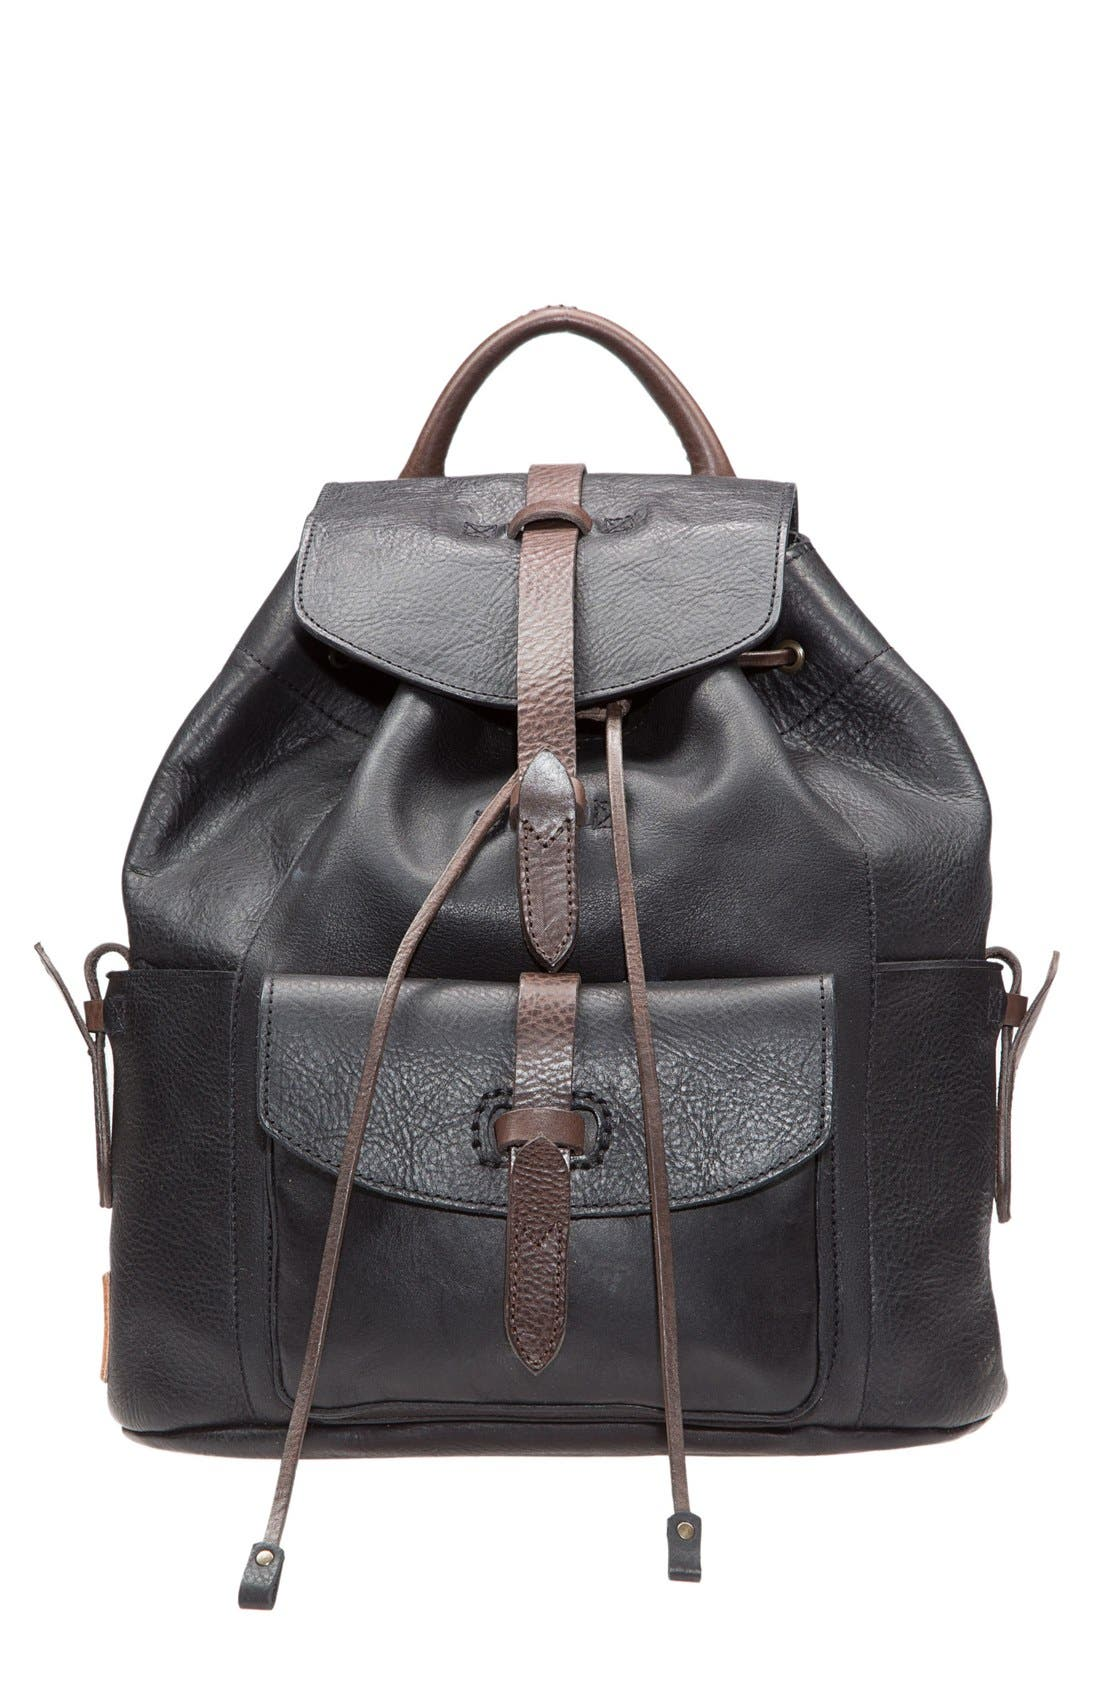 Main Image - Will Leather Goods 'Rainier' Leather Backpack